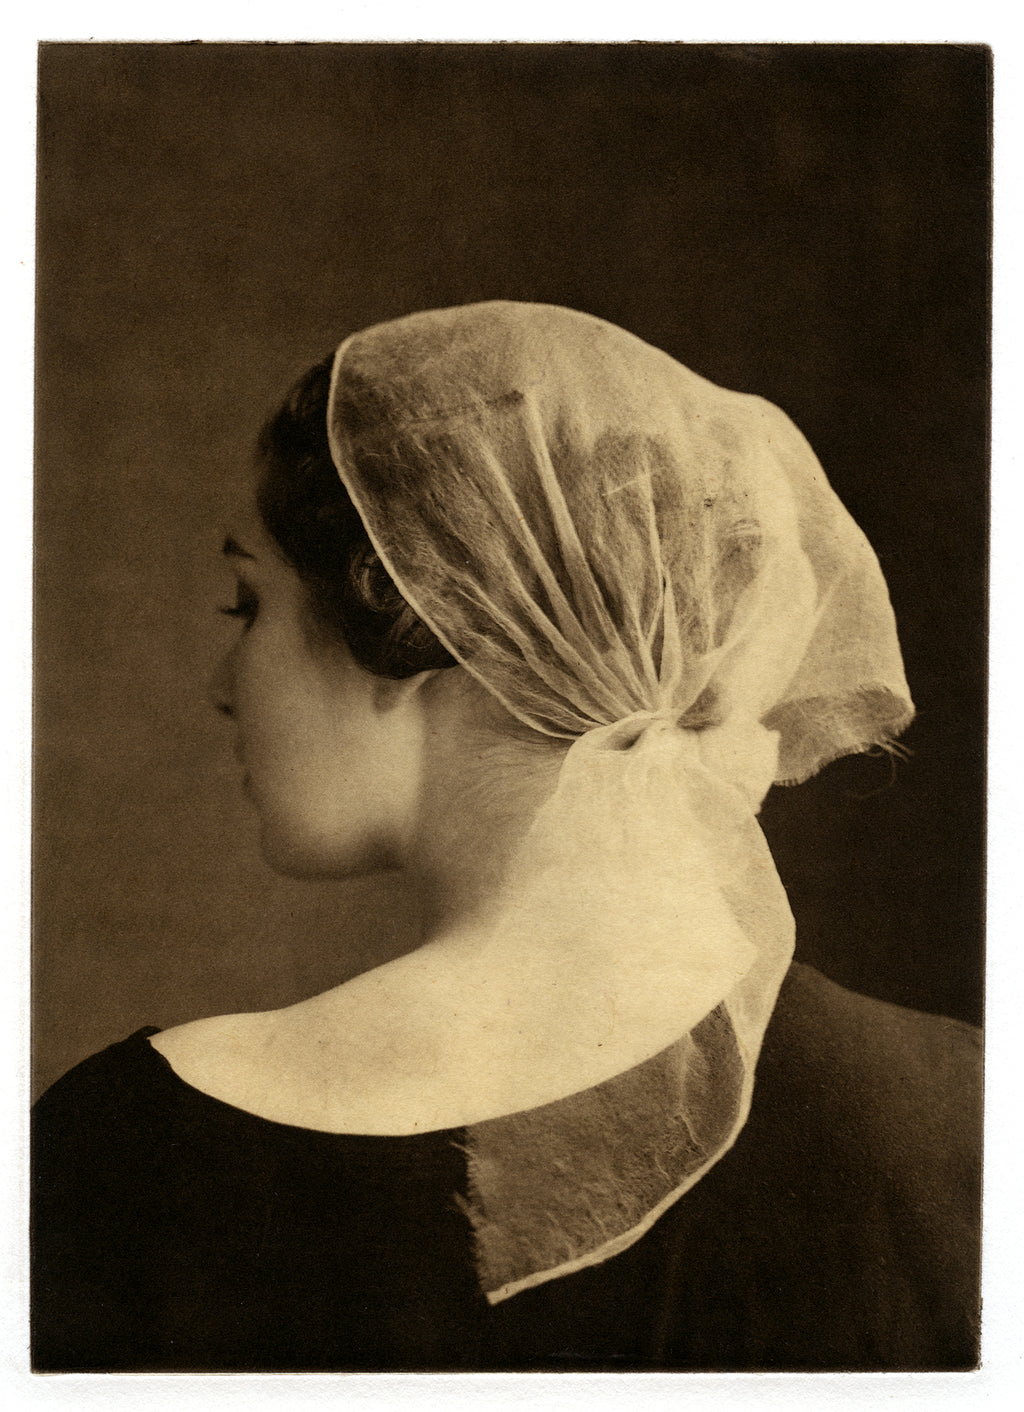 Coiffure   - Polymer photogravure print - Edition 2021